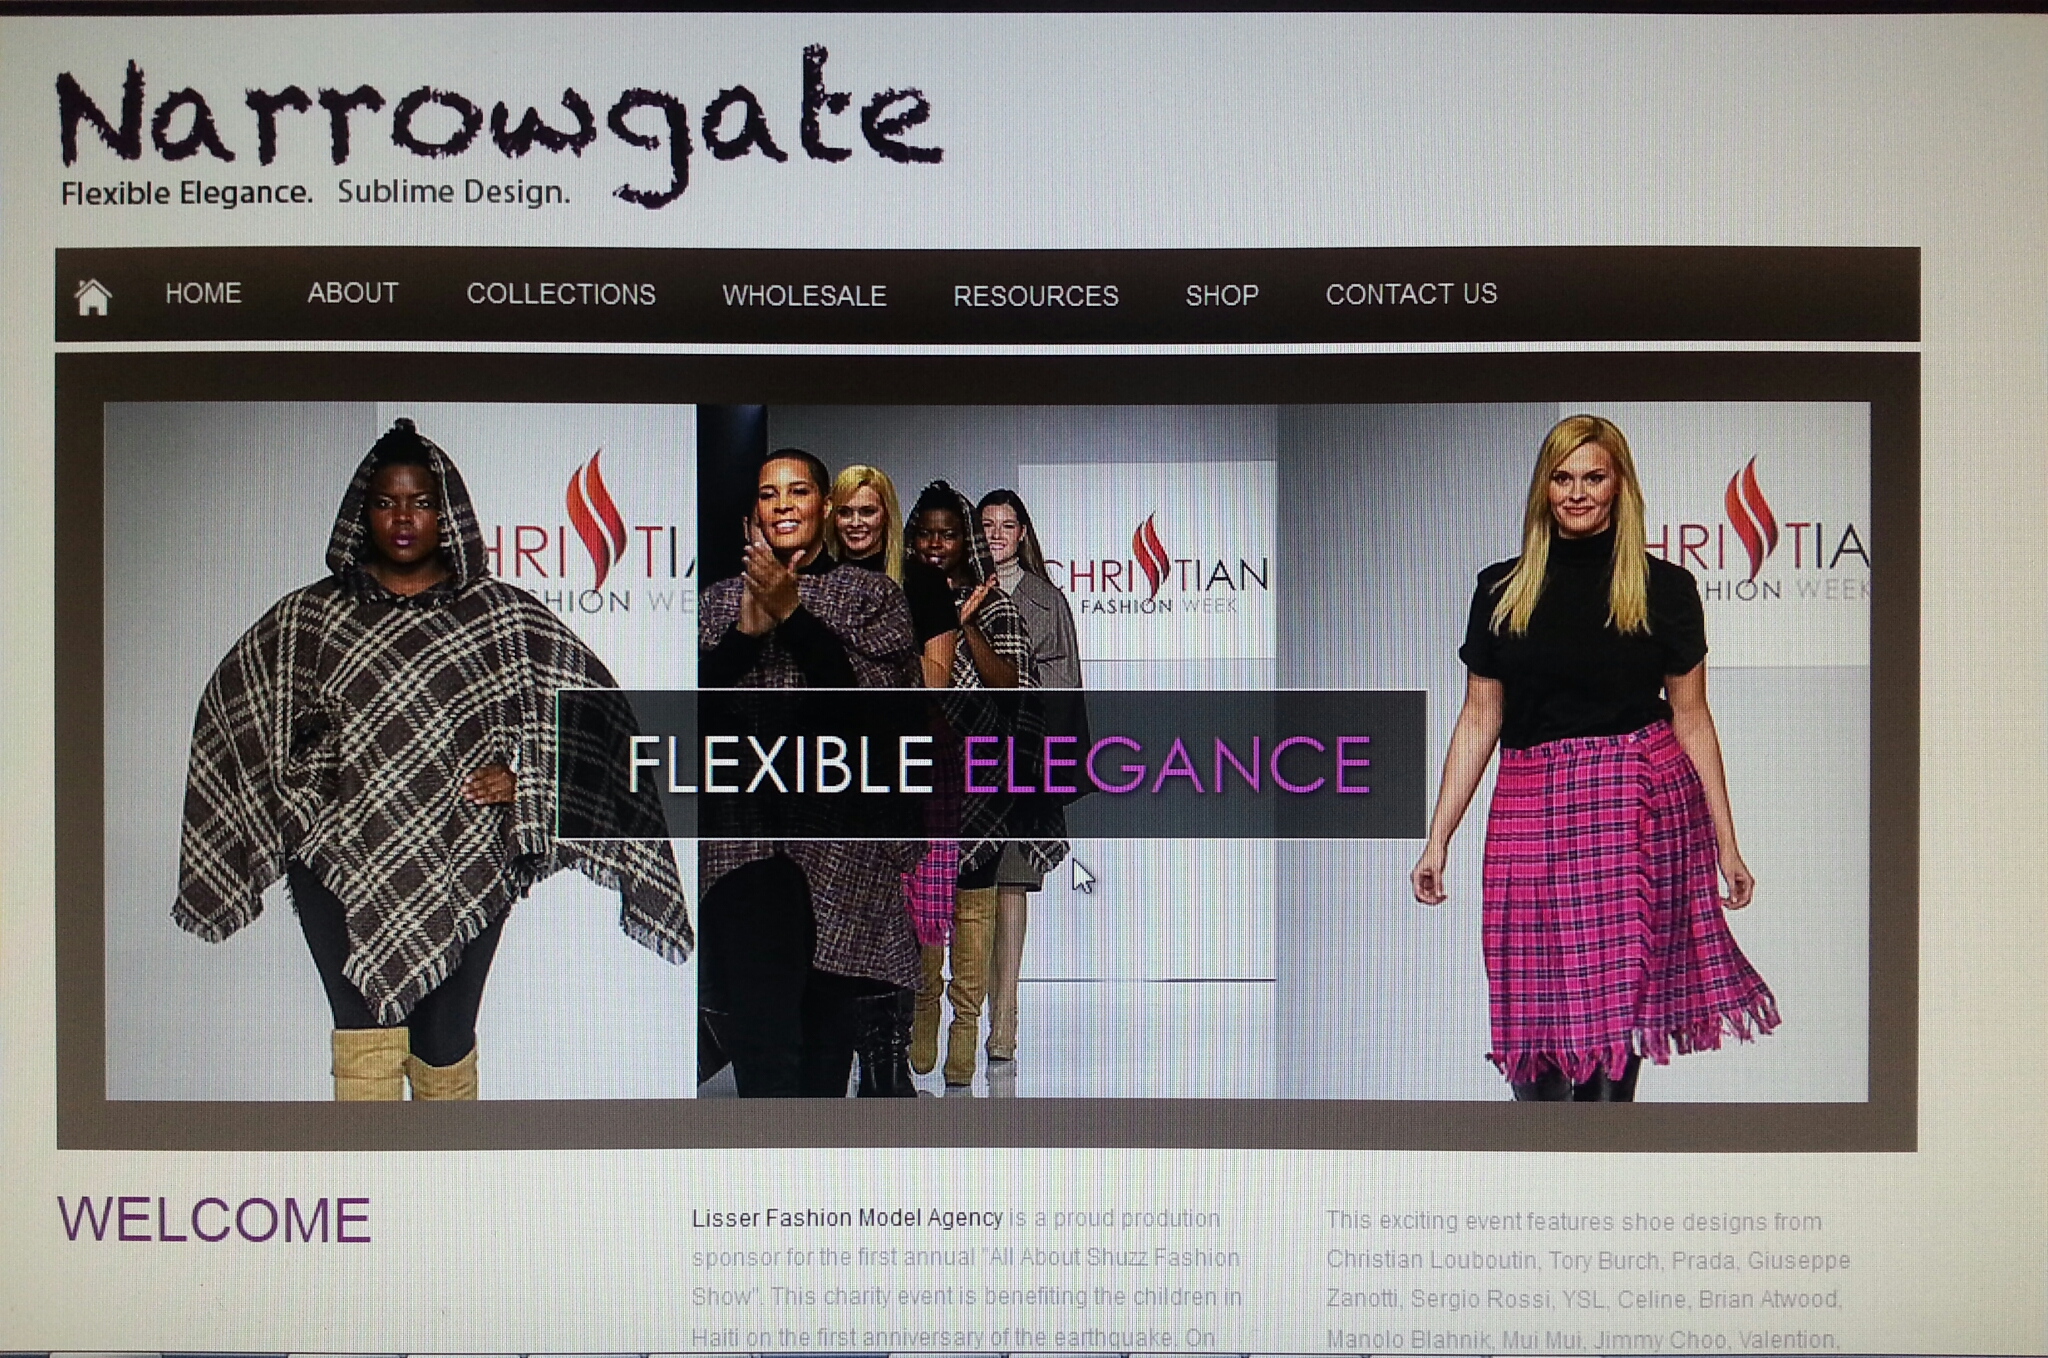 Narrowgate Fashion Screen Shot